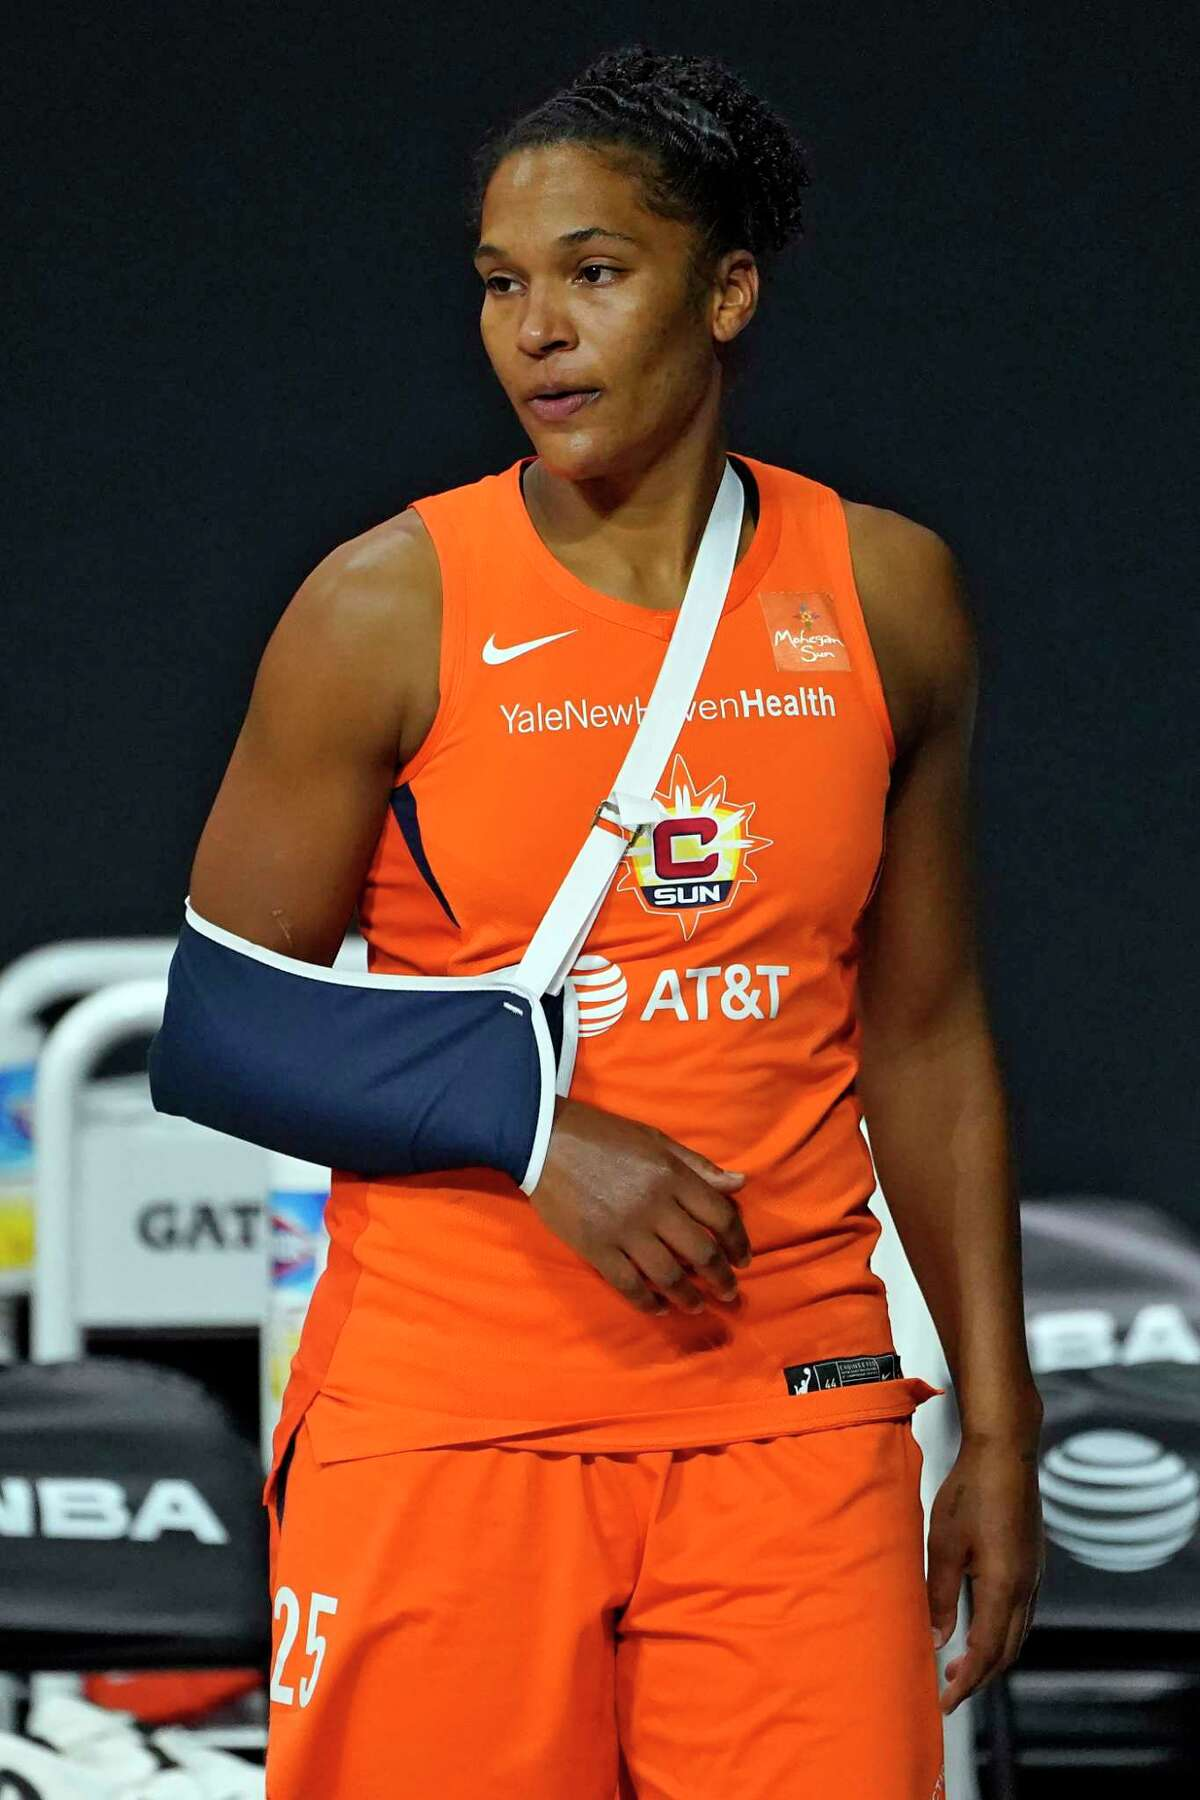 Connecticut Sun forward Alyssa Thomas watches from the bench after being injured during Game 2 of a semifinal-round playoff series against the Las Vegas Aces on Tuesday.